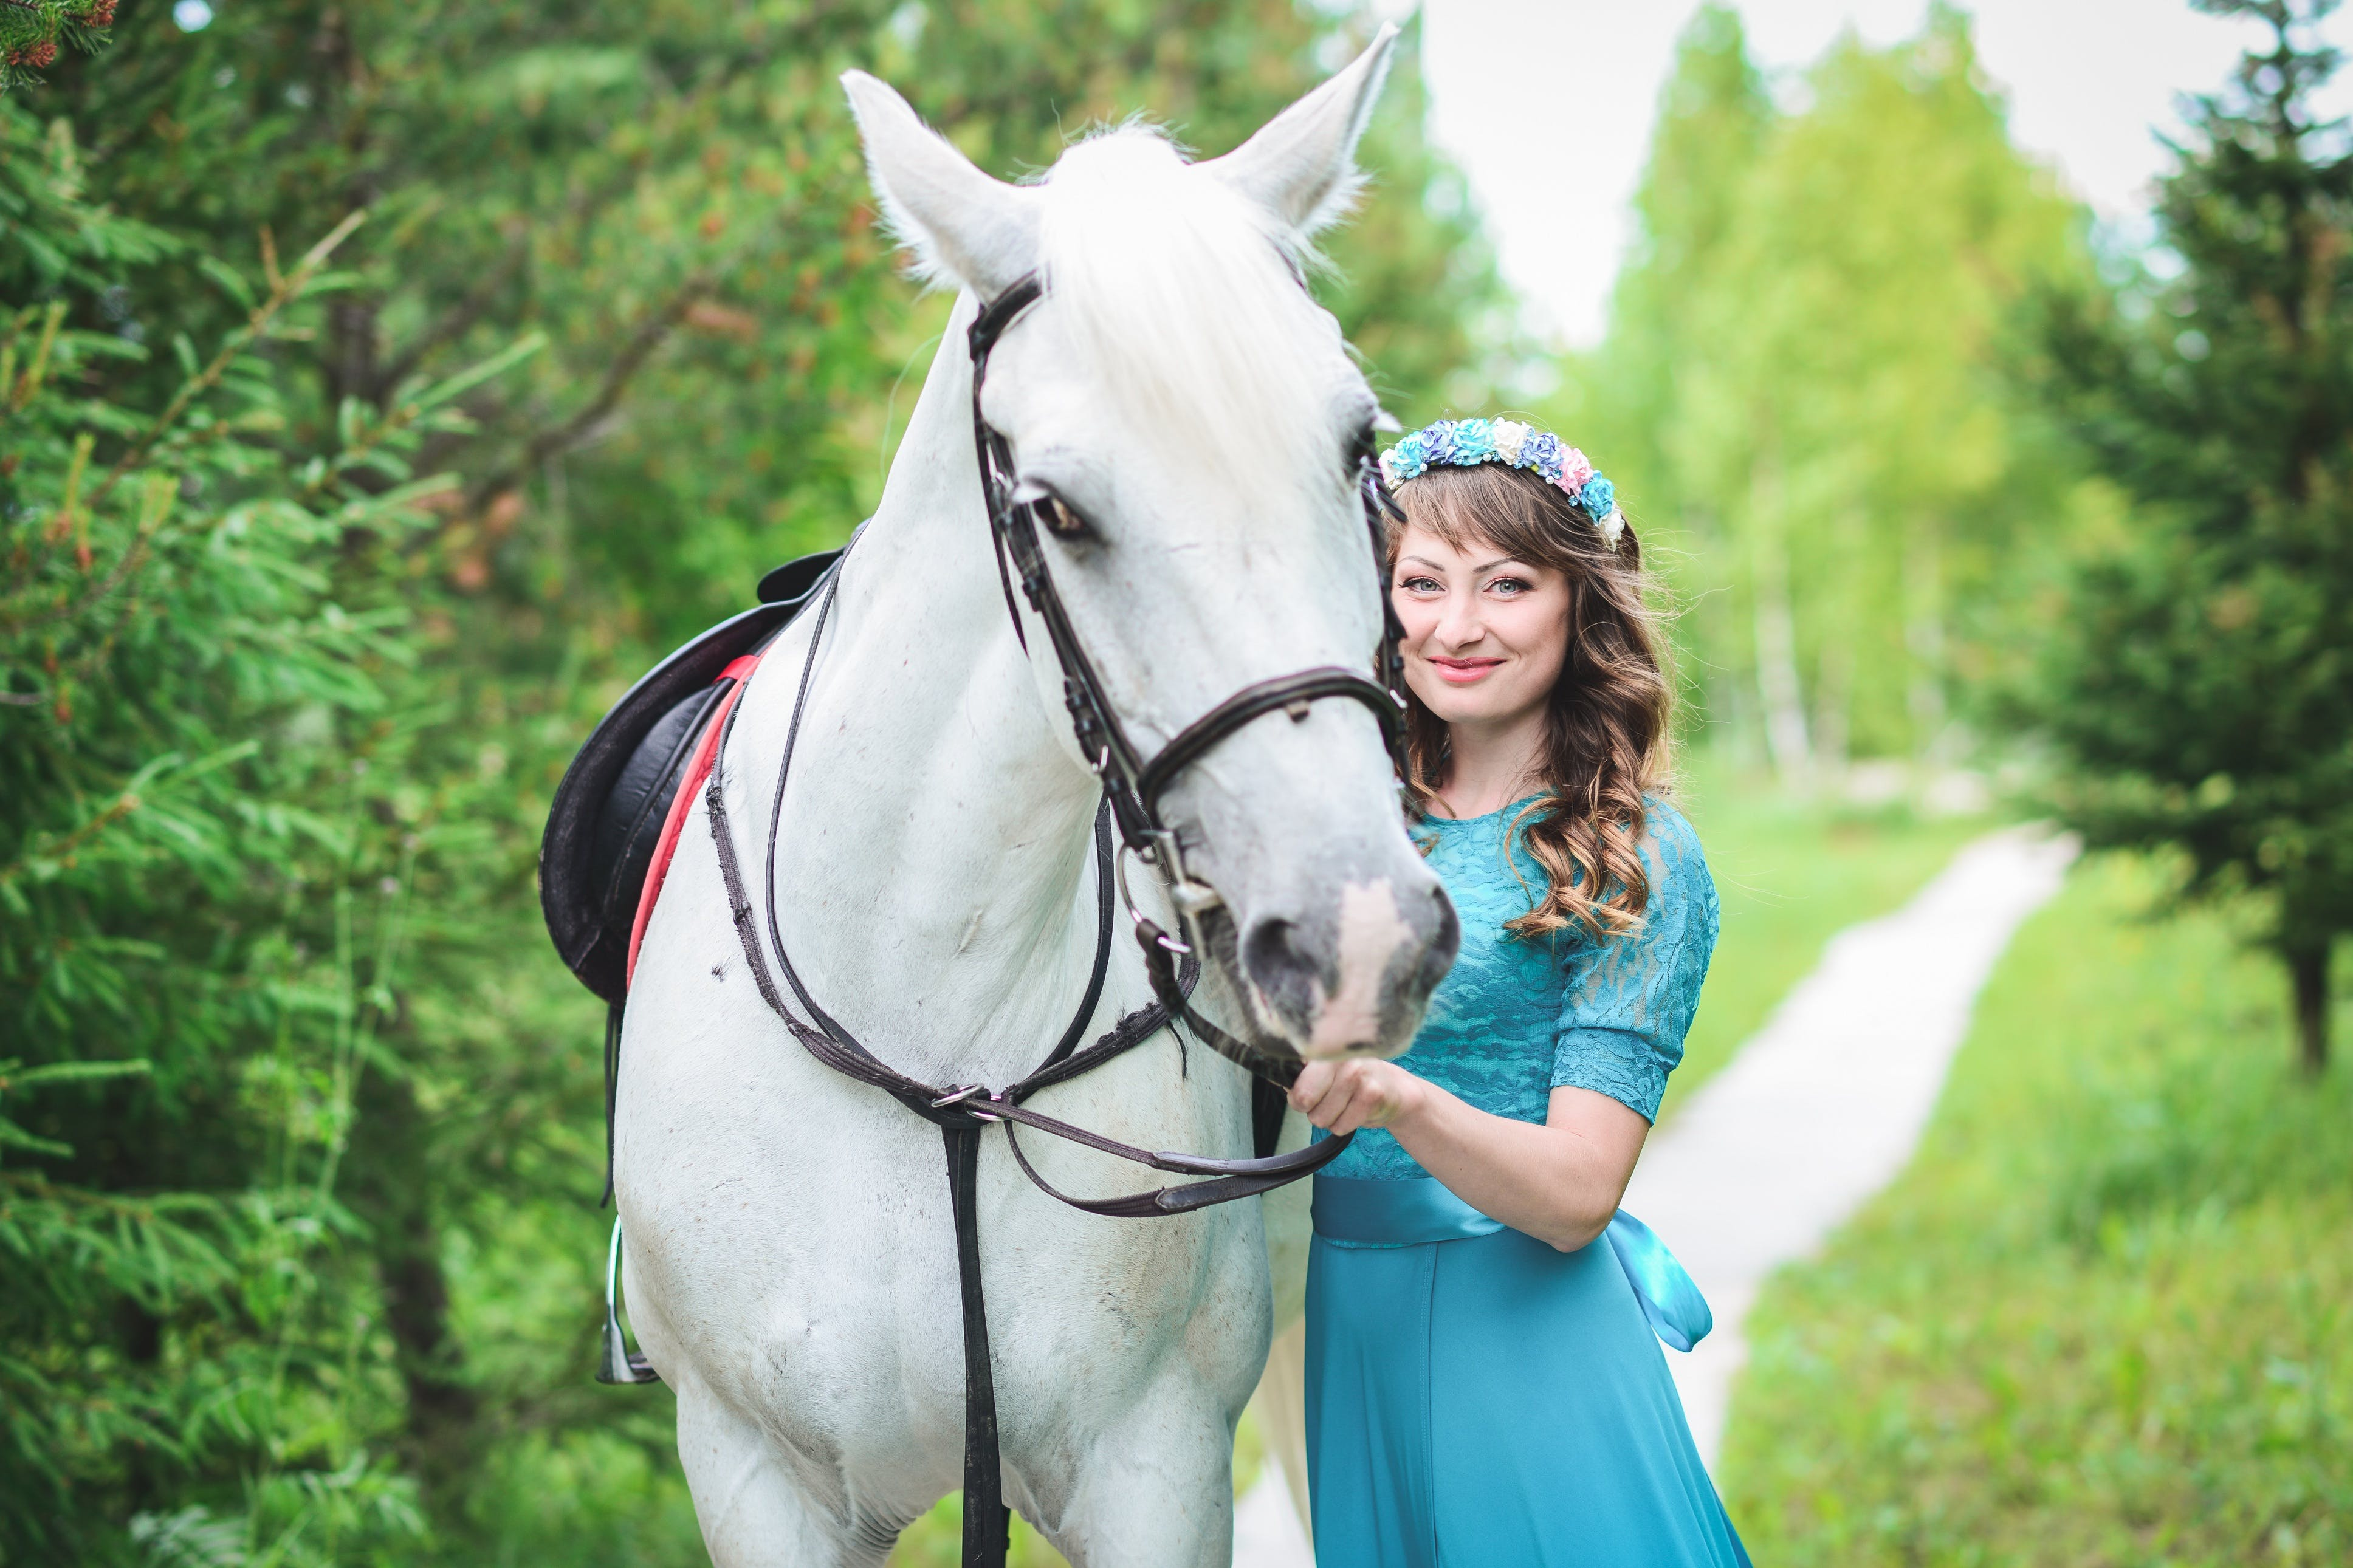 Smiling Woman in Blue Dress Standing Beside White Horse